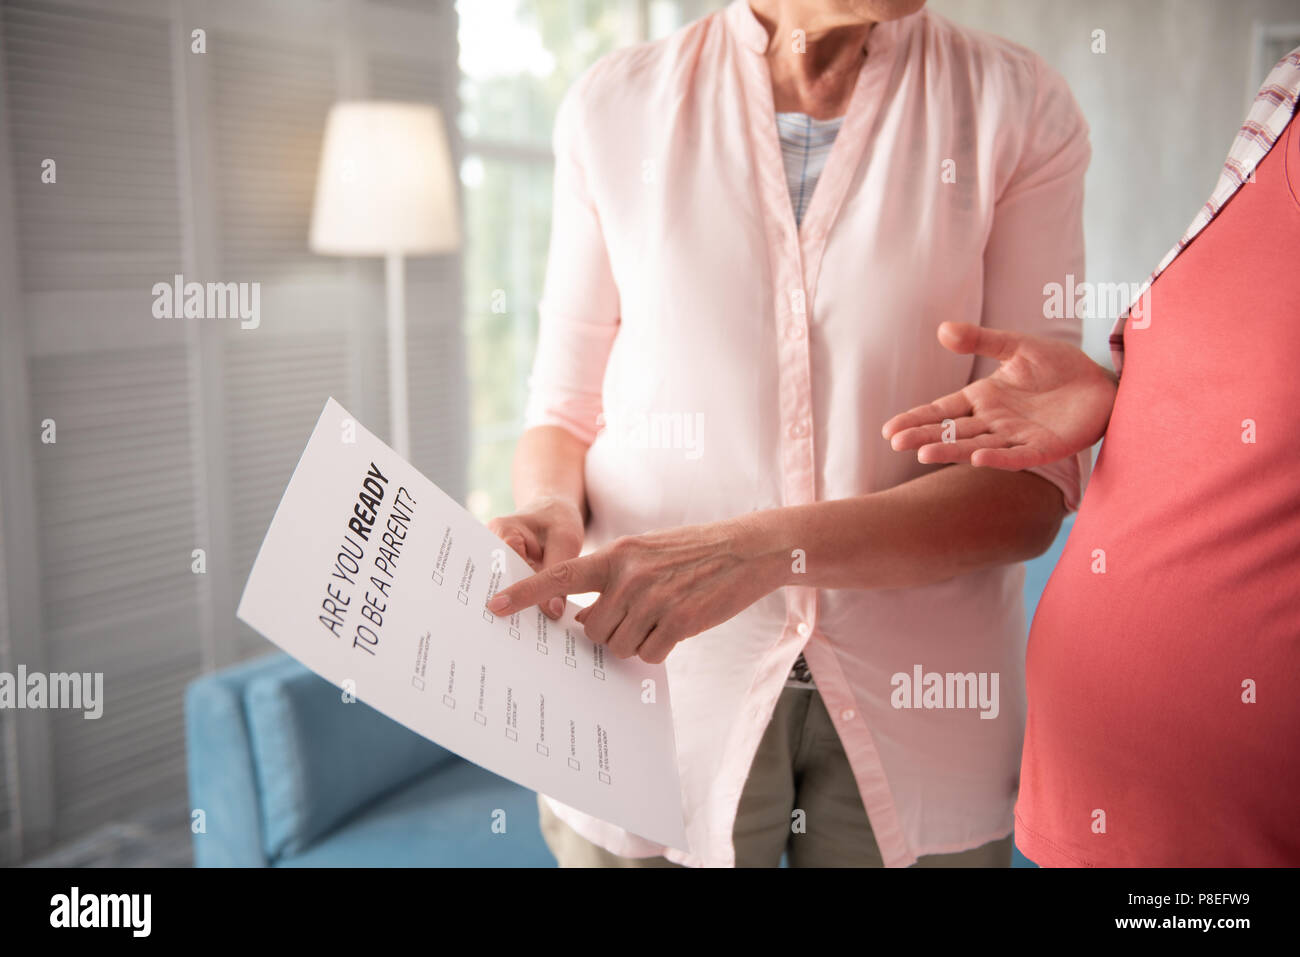 Helpful sociologist making poll for pregnant women - Stock Image